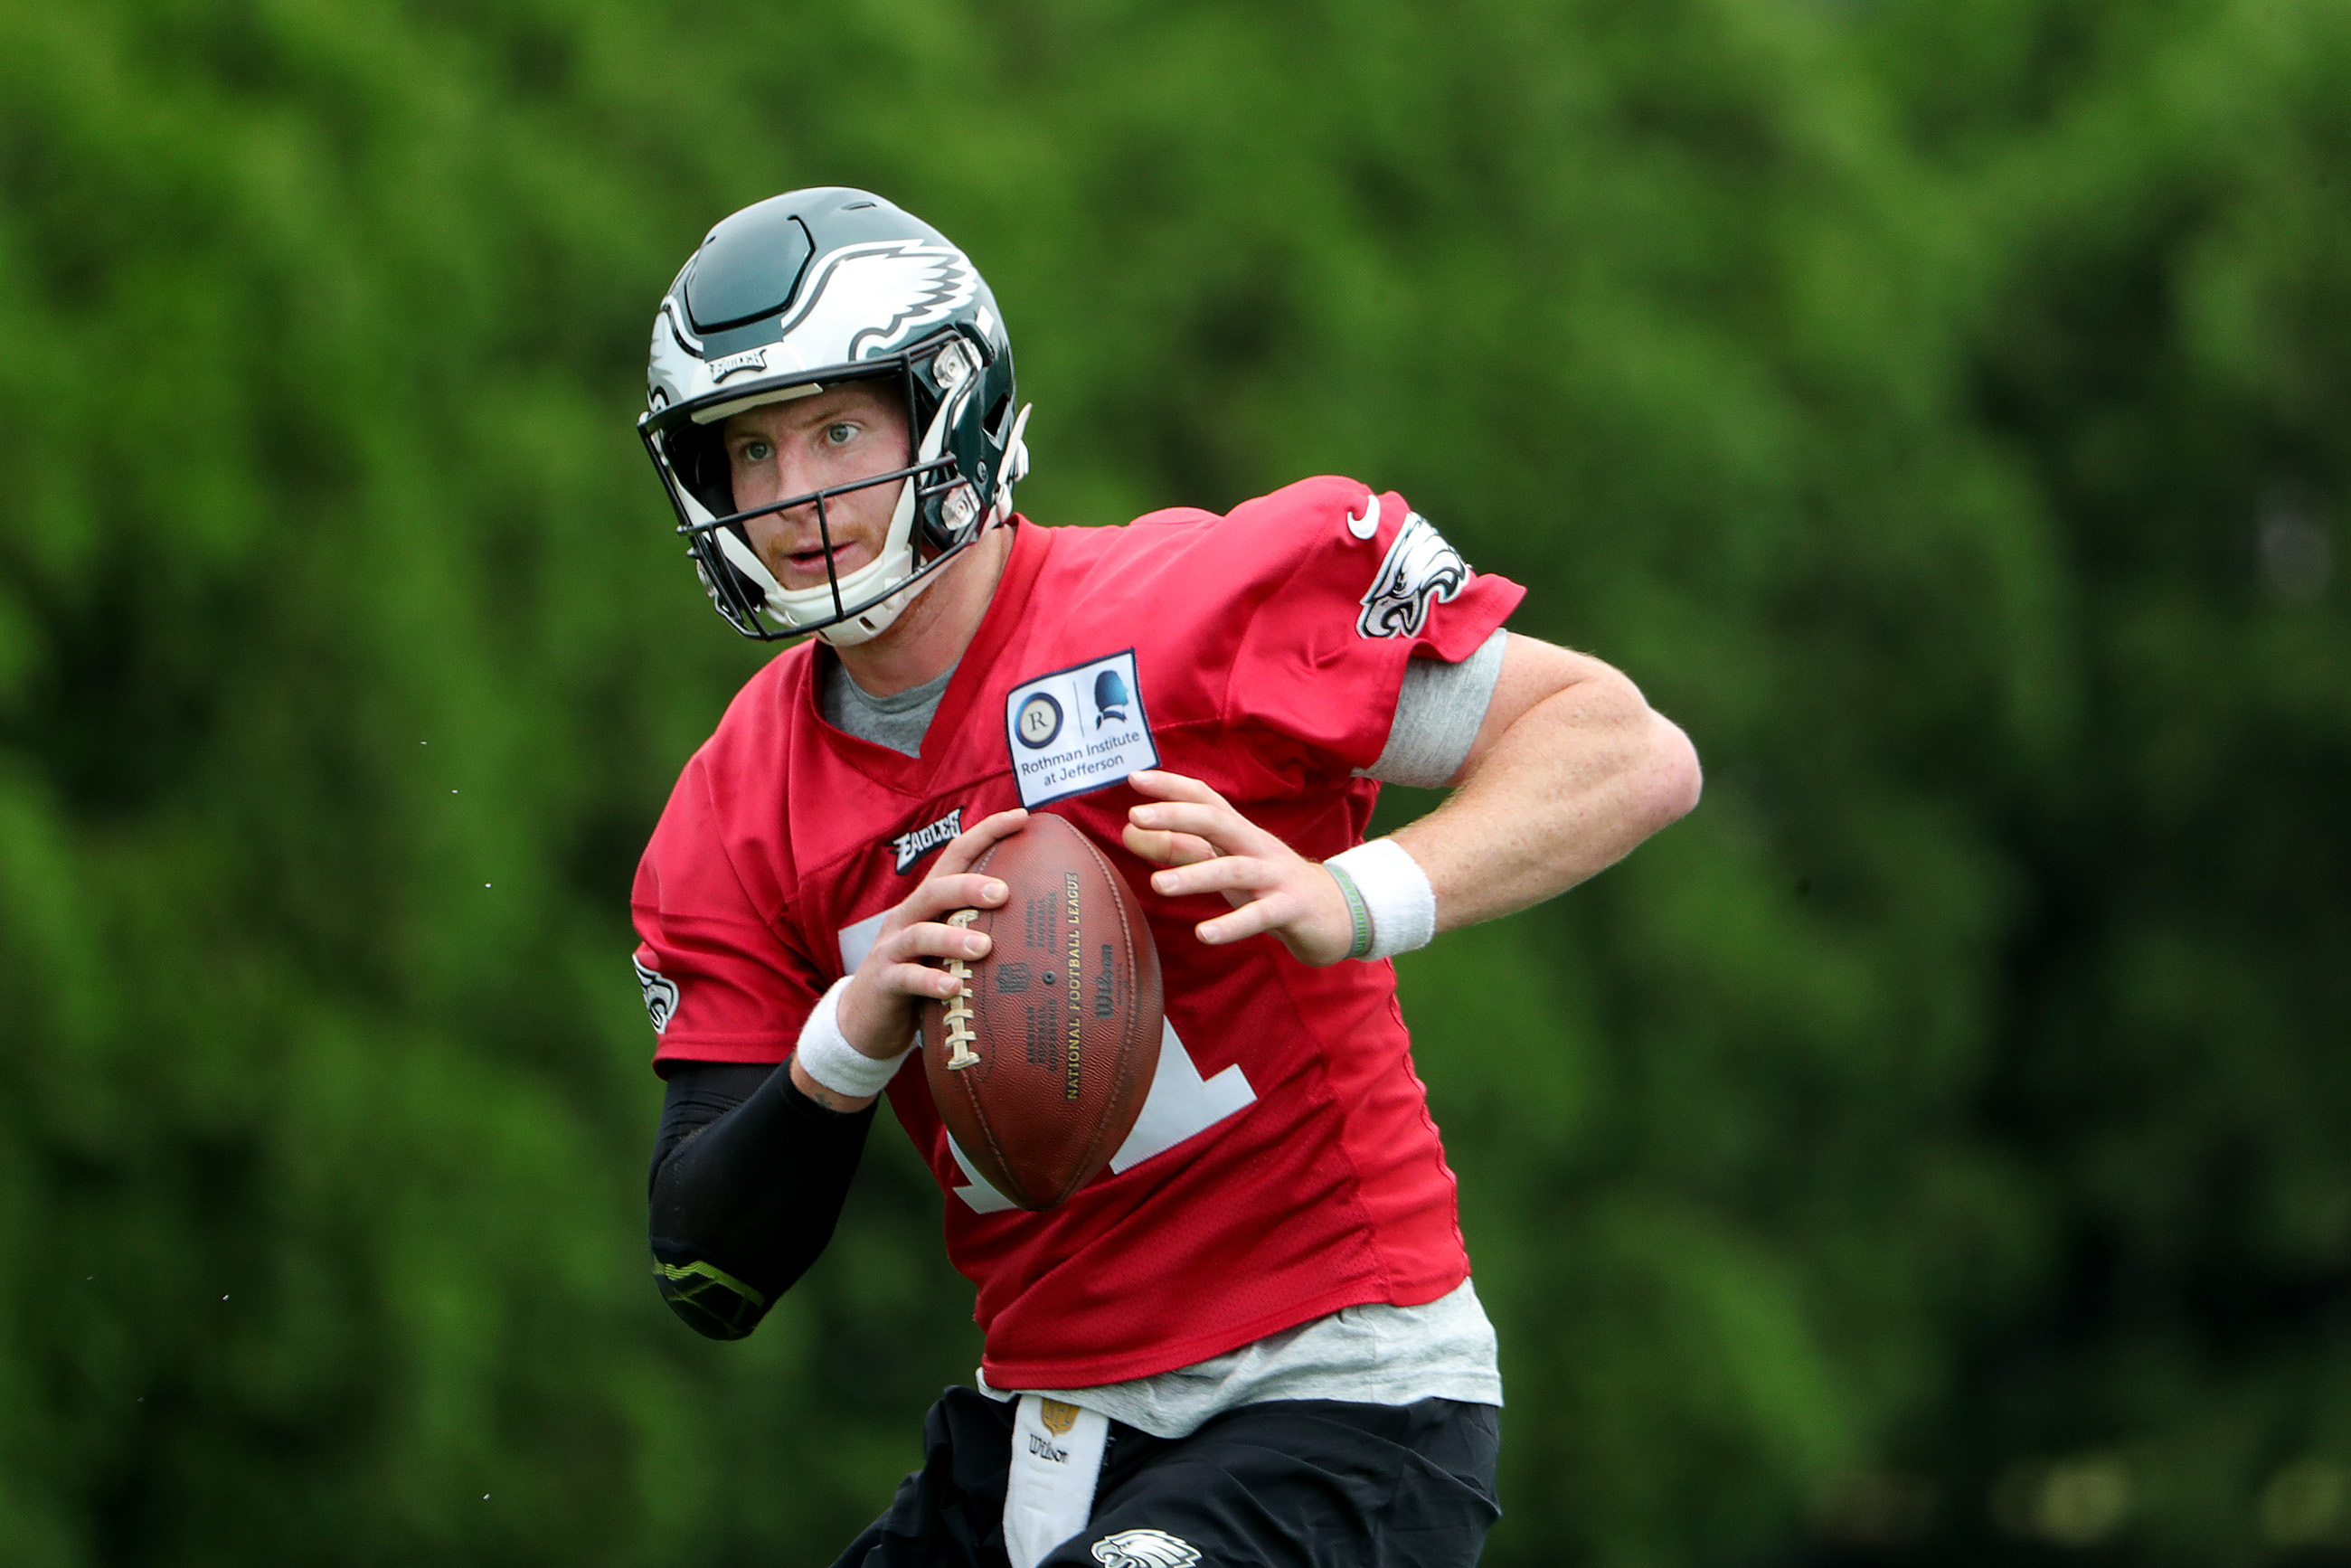 Carson Wentz, roughly six months removed from knee surgery, has impressed during minicamp.